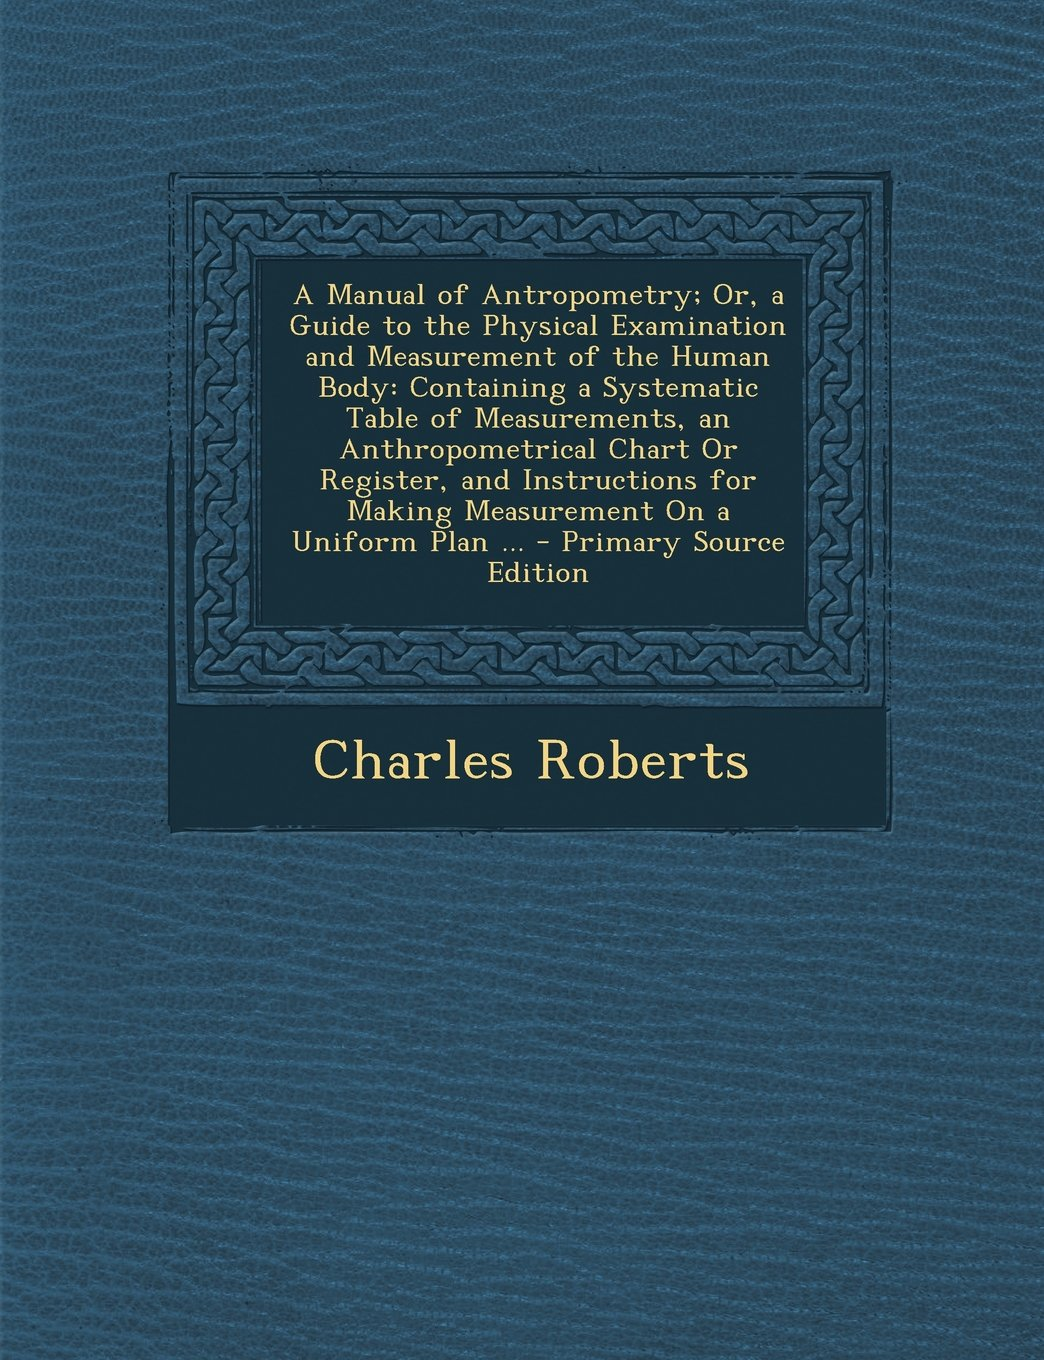 A Manual of Antropometry; Or, a Guide to the Physical Examination and Measurement of the Human Body: Containing a Systematic Table of Measurements, an ... Measurement On a Uniform Plan ... - Prim pdf epub